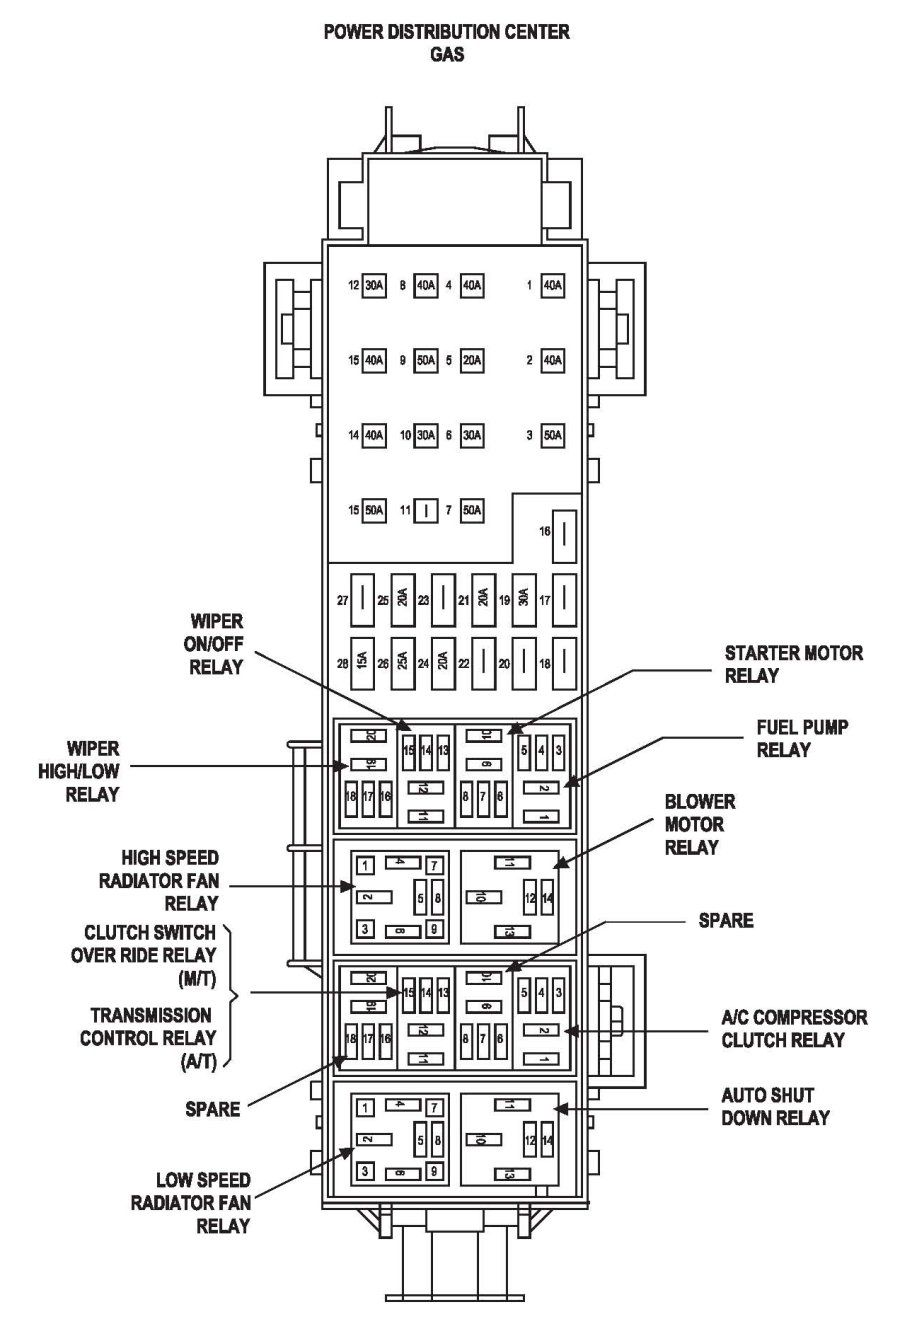 [SODI_2457]   Jeep Liberty Fuse Box Diagram - image details | Jeep liberty, Jeep  commander, Fuse box | 2004 Jeep Liberty Fuse Box Layout |  | Pinterest